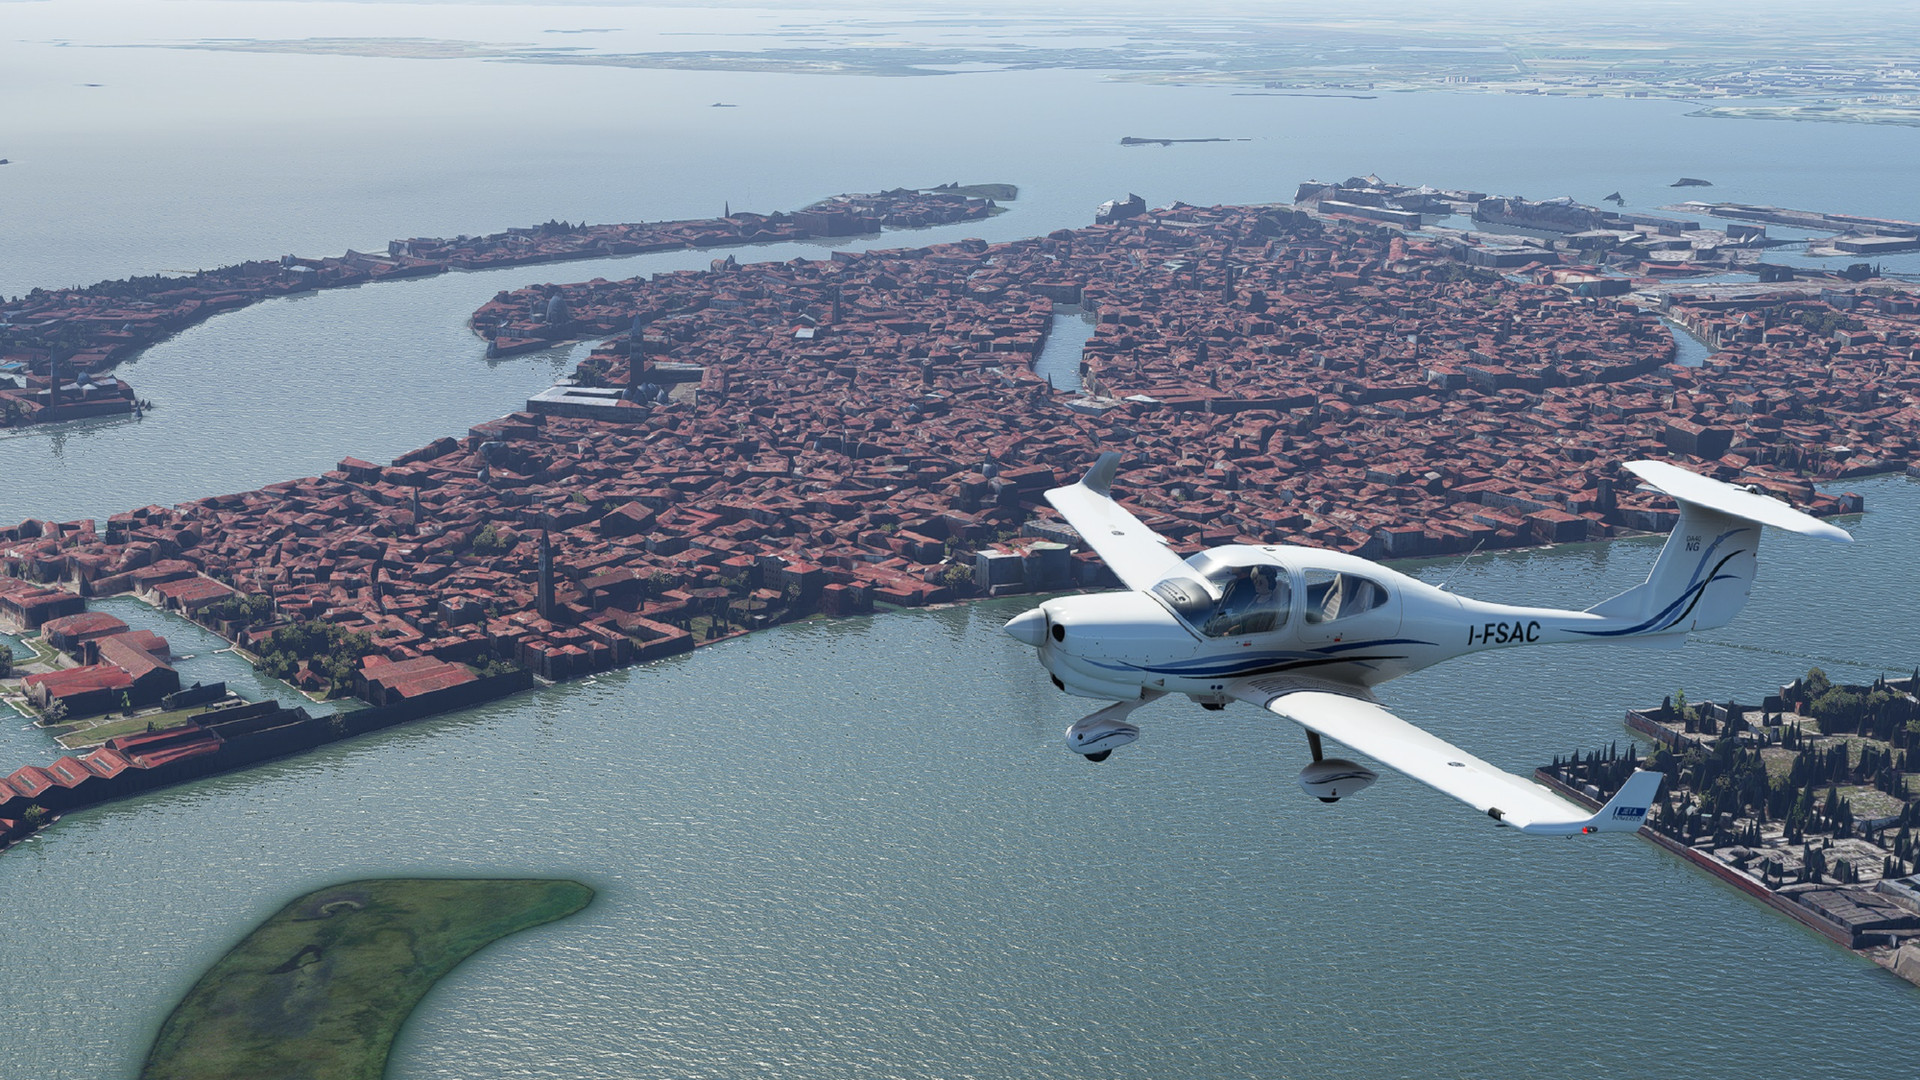 Explore Venice as you put your skills to the test